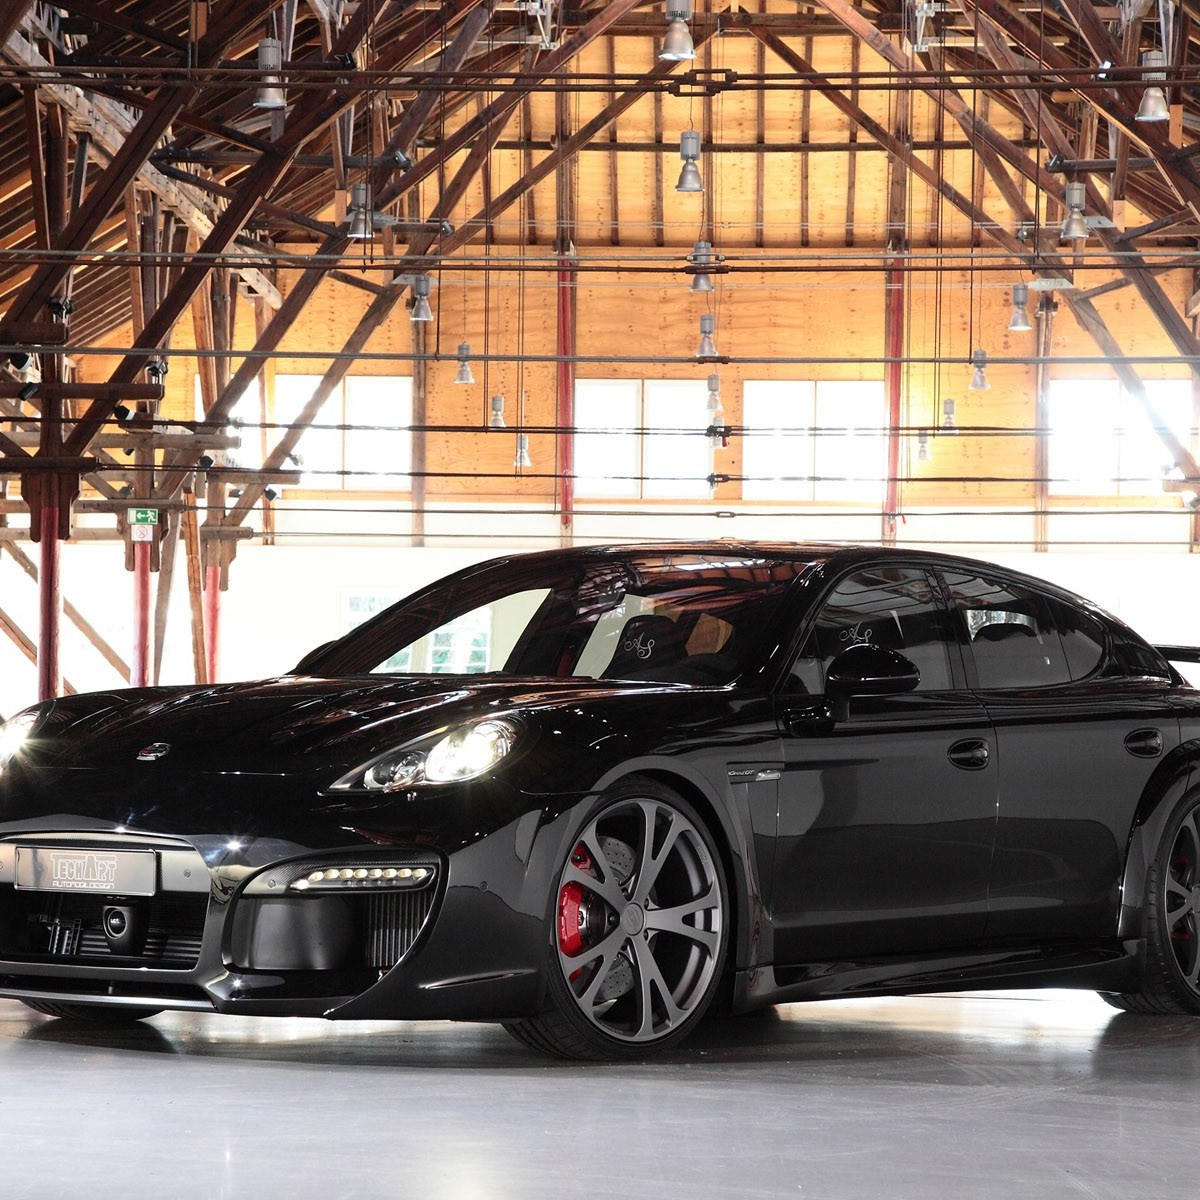 2011 Techart Porsche Panamera Turbo Grand GT